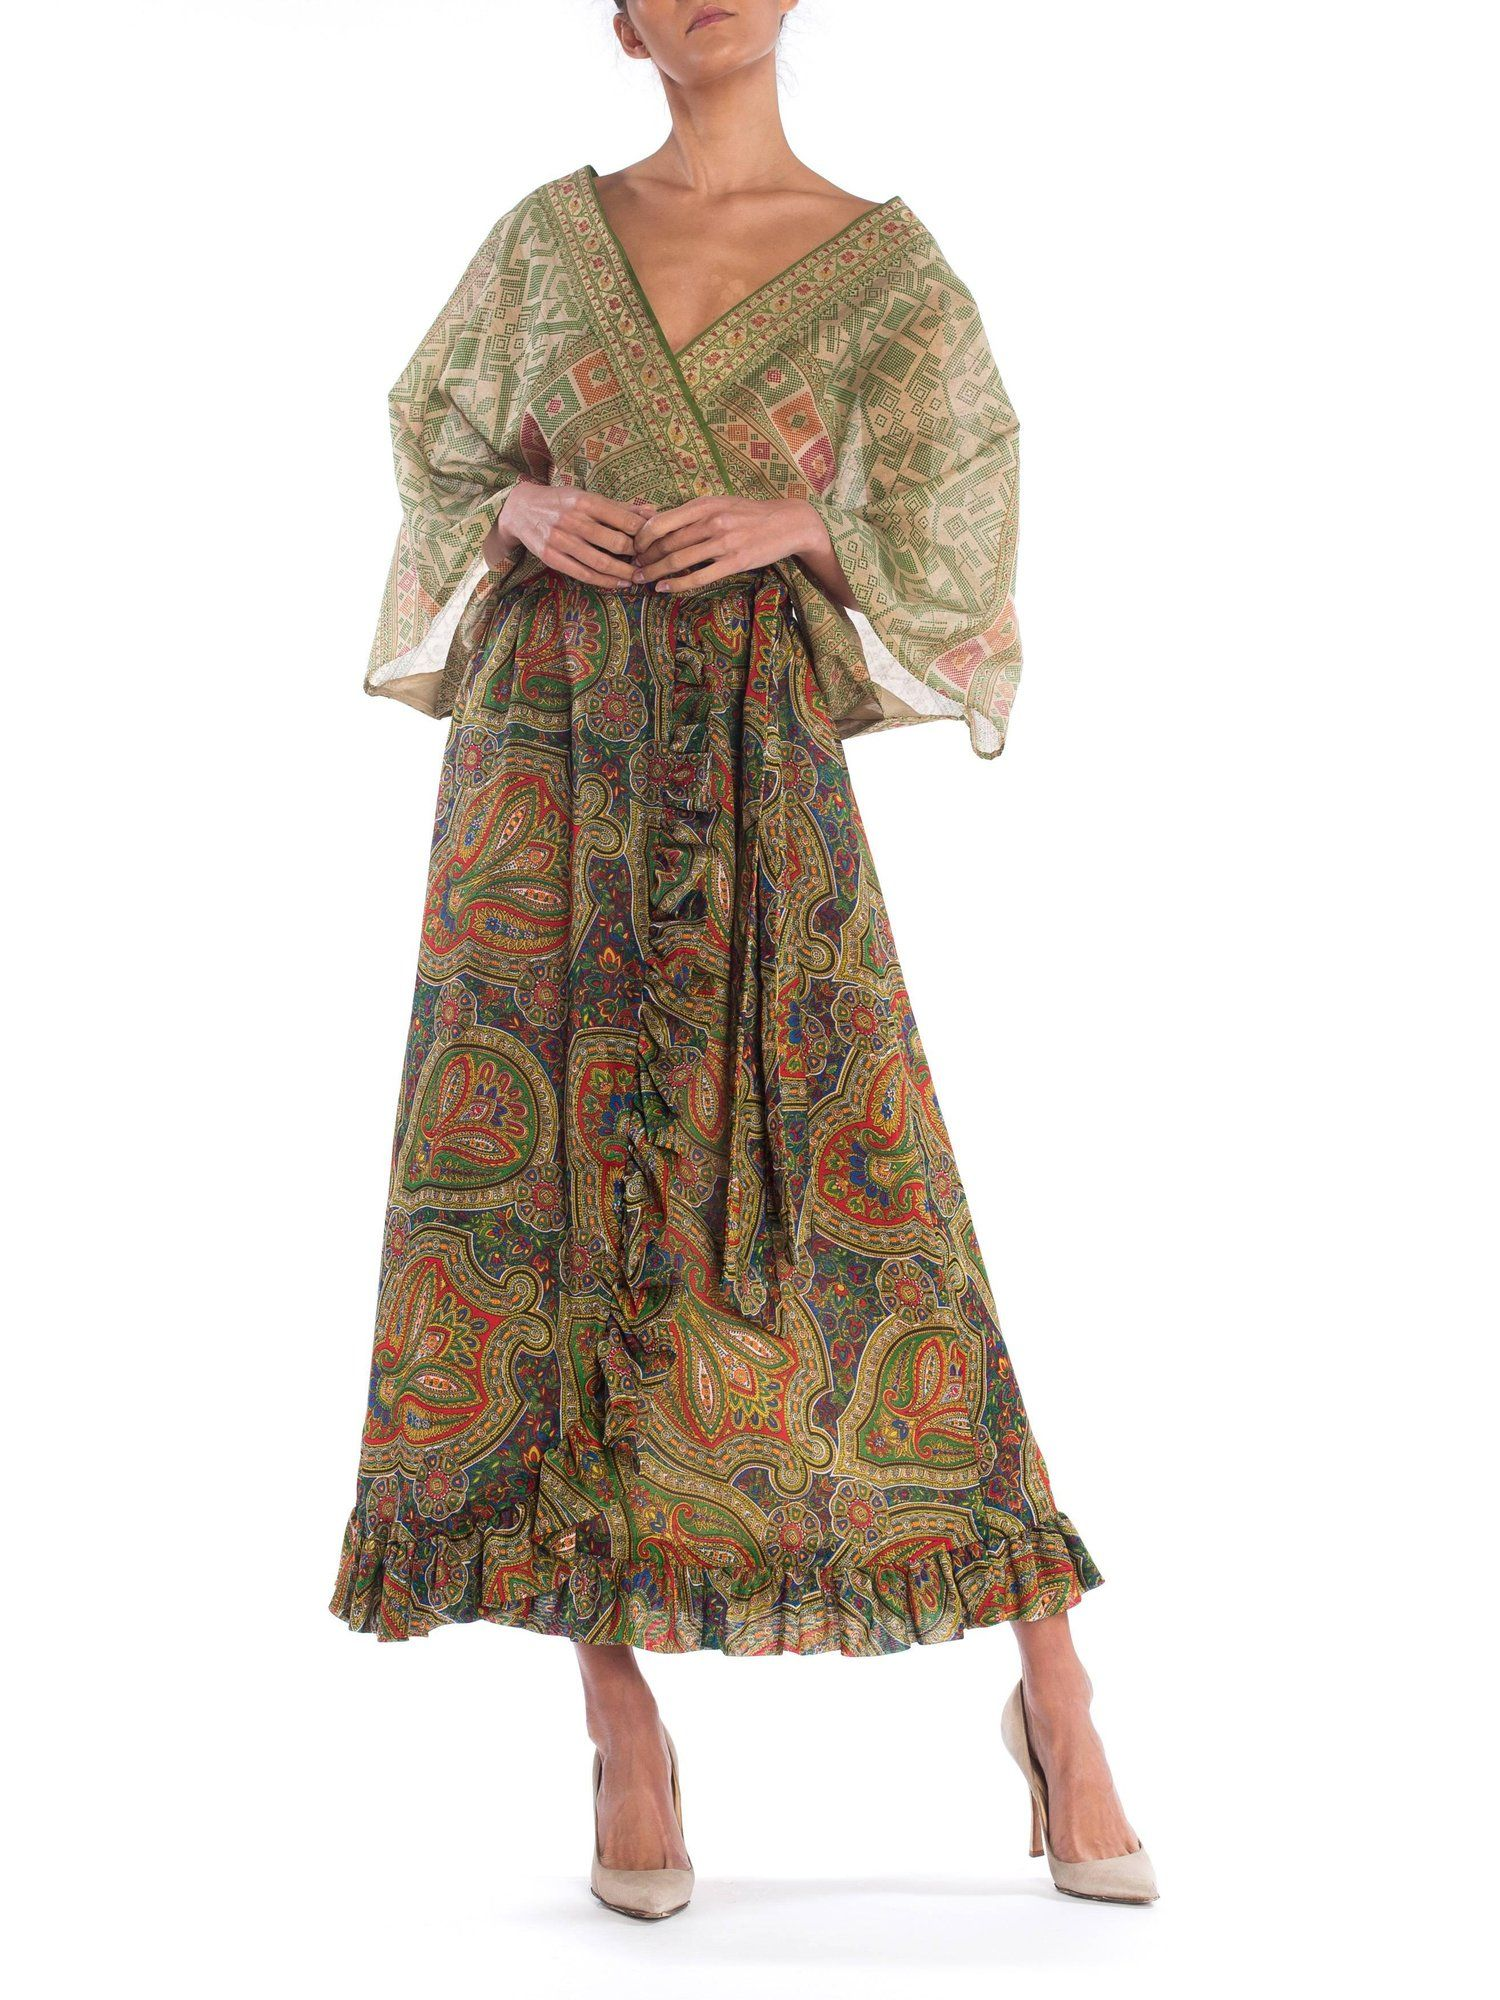 036934213d Paisley Print Wrap Dress with Antique Indian Sari Top   From a collection  of rare vintage